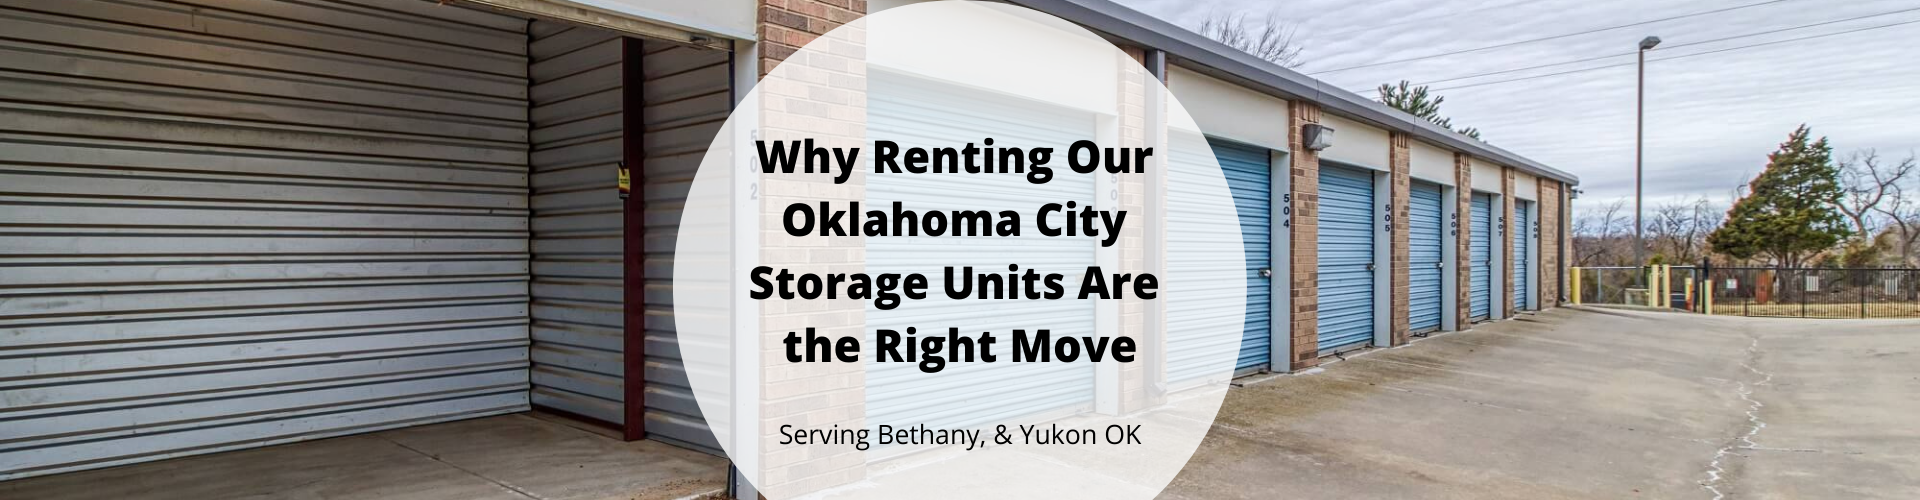 Oklahoma City Storage Units